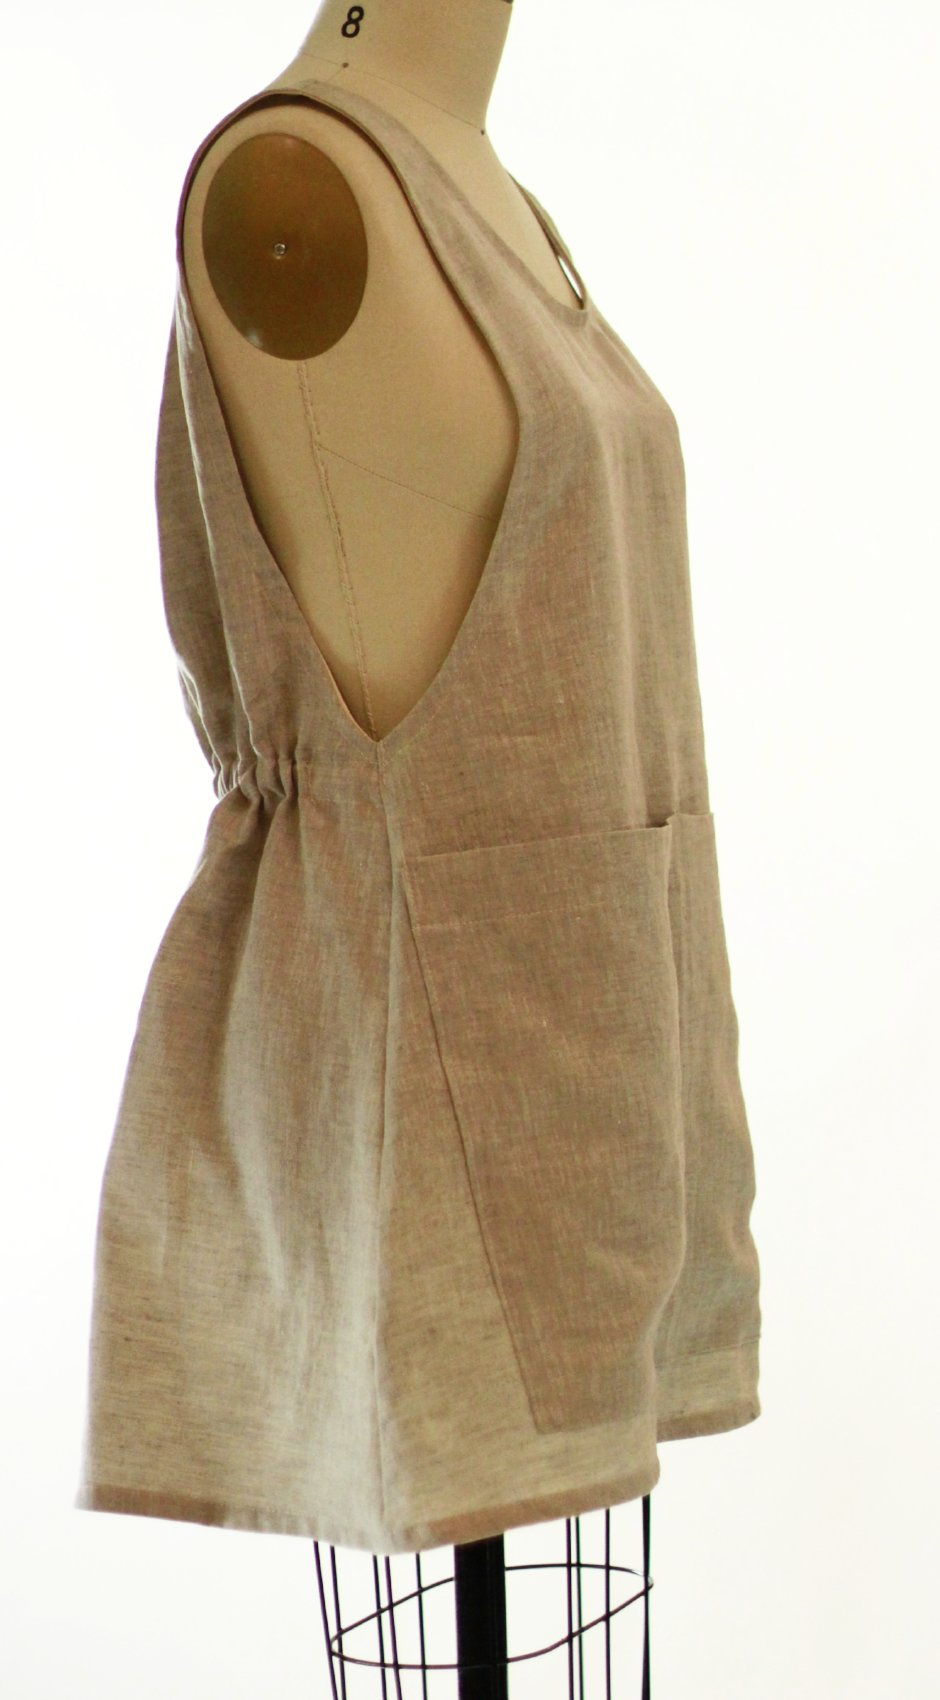 XS-5X Smock #2 in Flax Linen